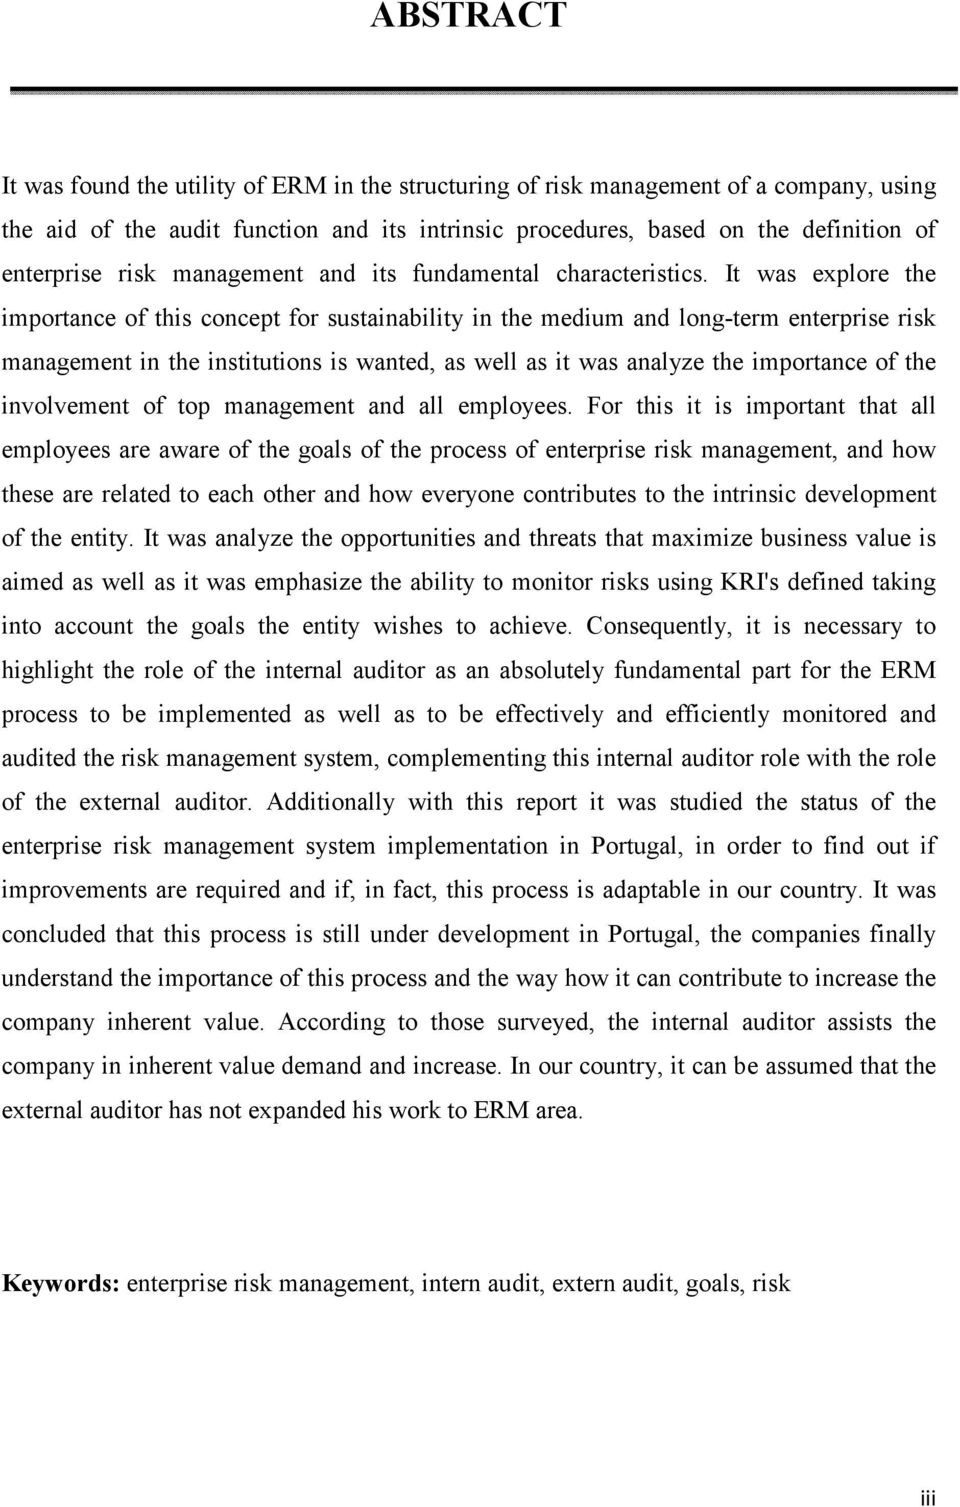 It was explore the importance of this concept for sustainability in the medium and long-term enterprise risk management in the institutions is wanted, as well as it was analyze the importance of the